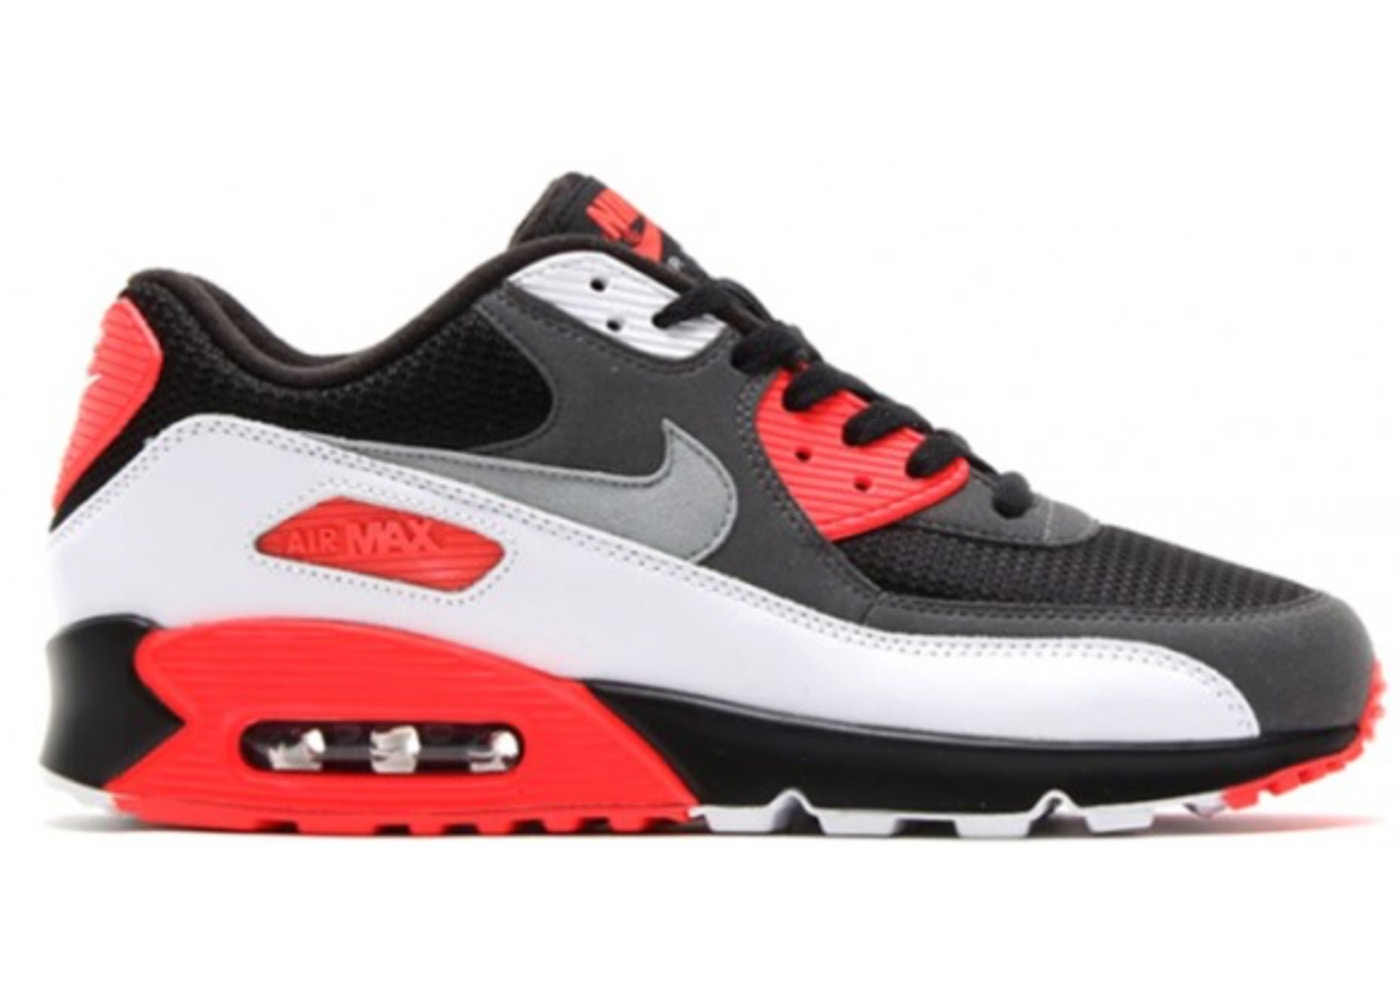 finest selection 491d8 975f9 Nike Air Max 90 Essential Black / Red New Men's Trainers - True Looks